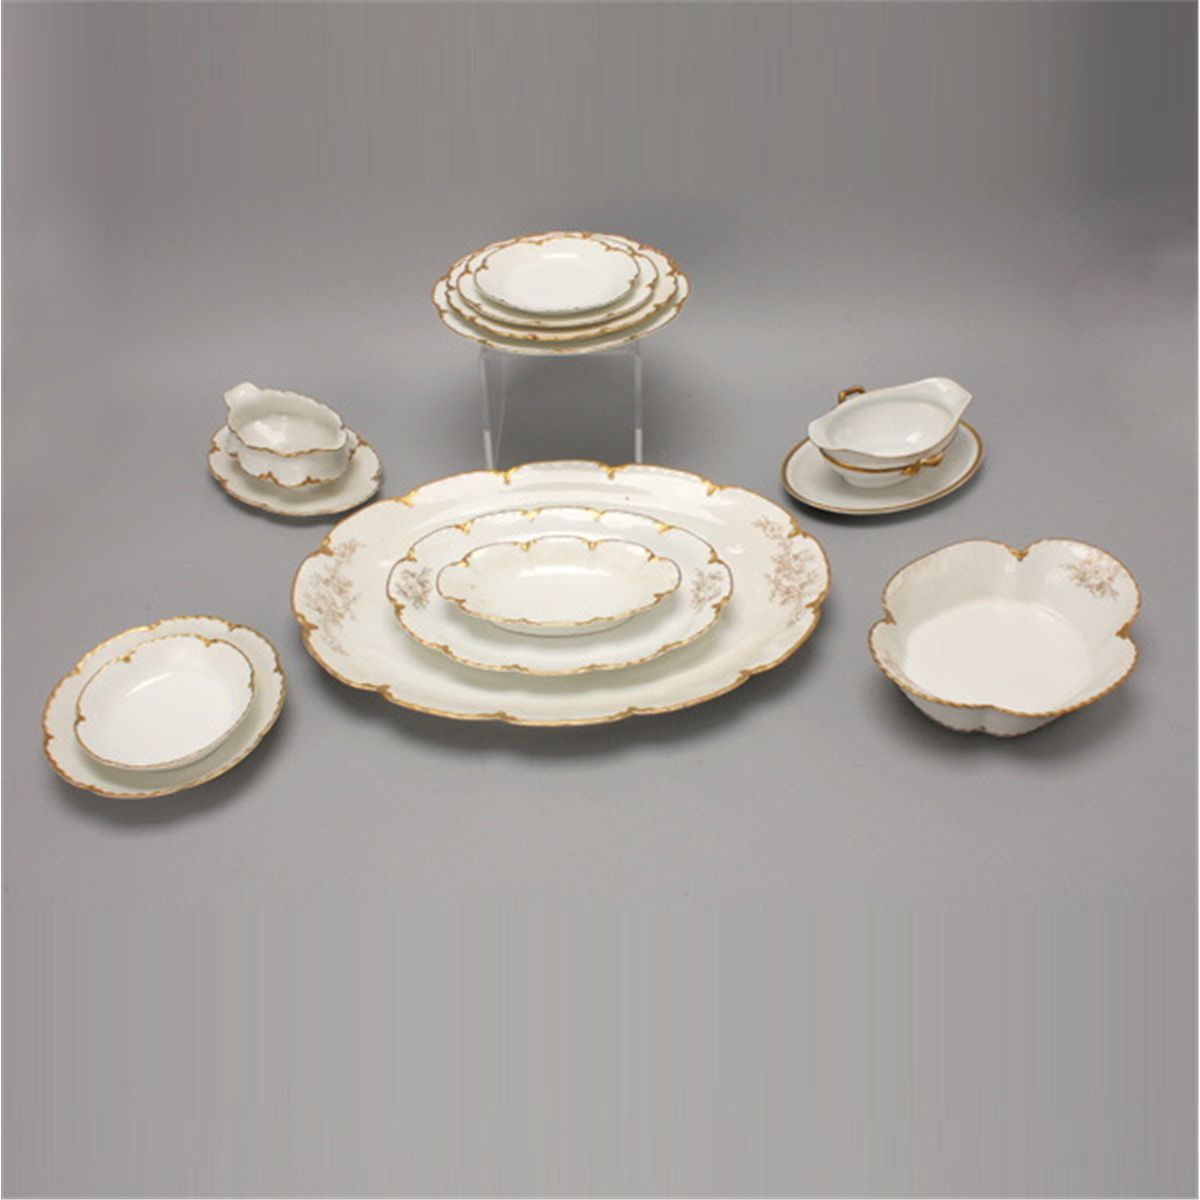 dating haviland limoges china Find best value and selection for your history haviland limoges date haviland co marks theodore haviland new york haviland limoges marks haviland decorator marks search on ebay.